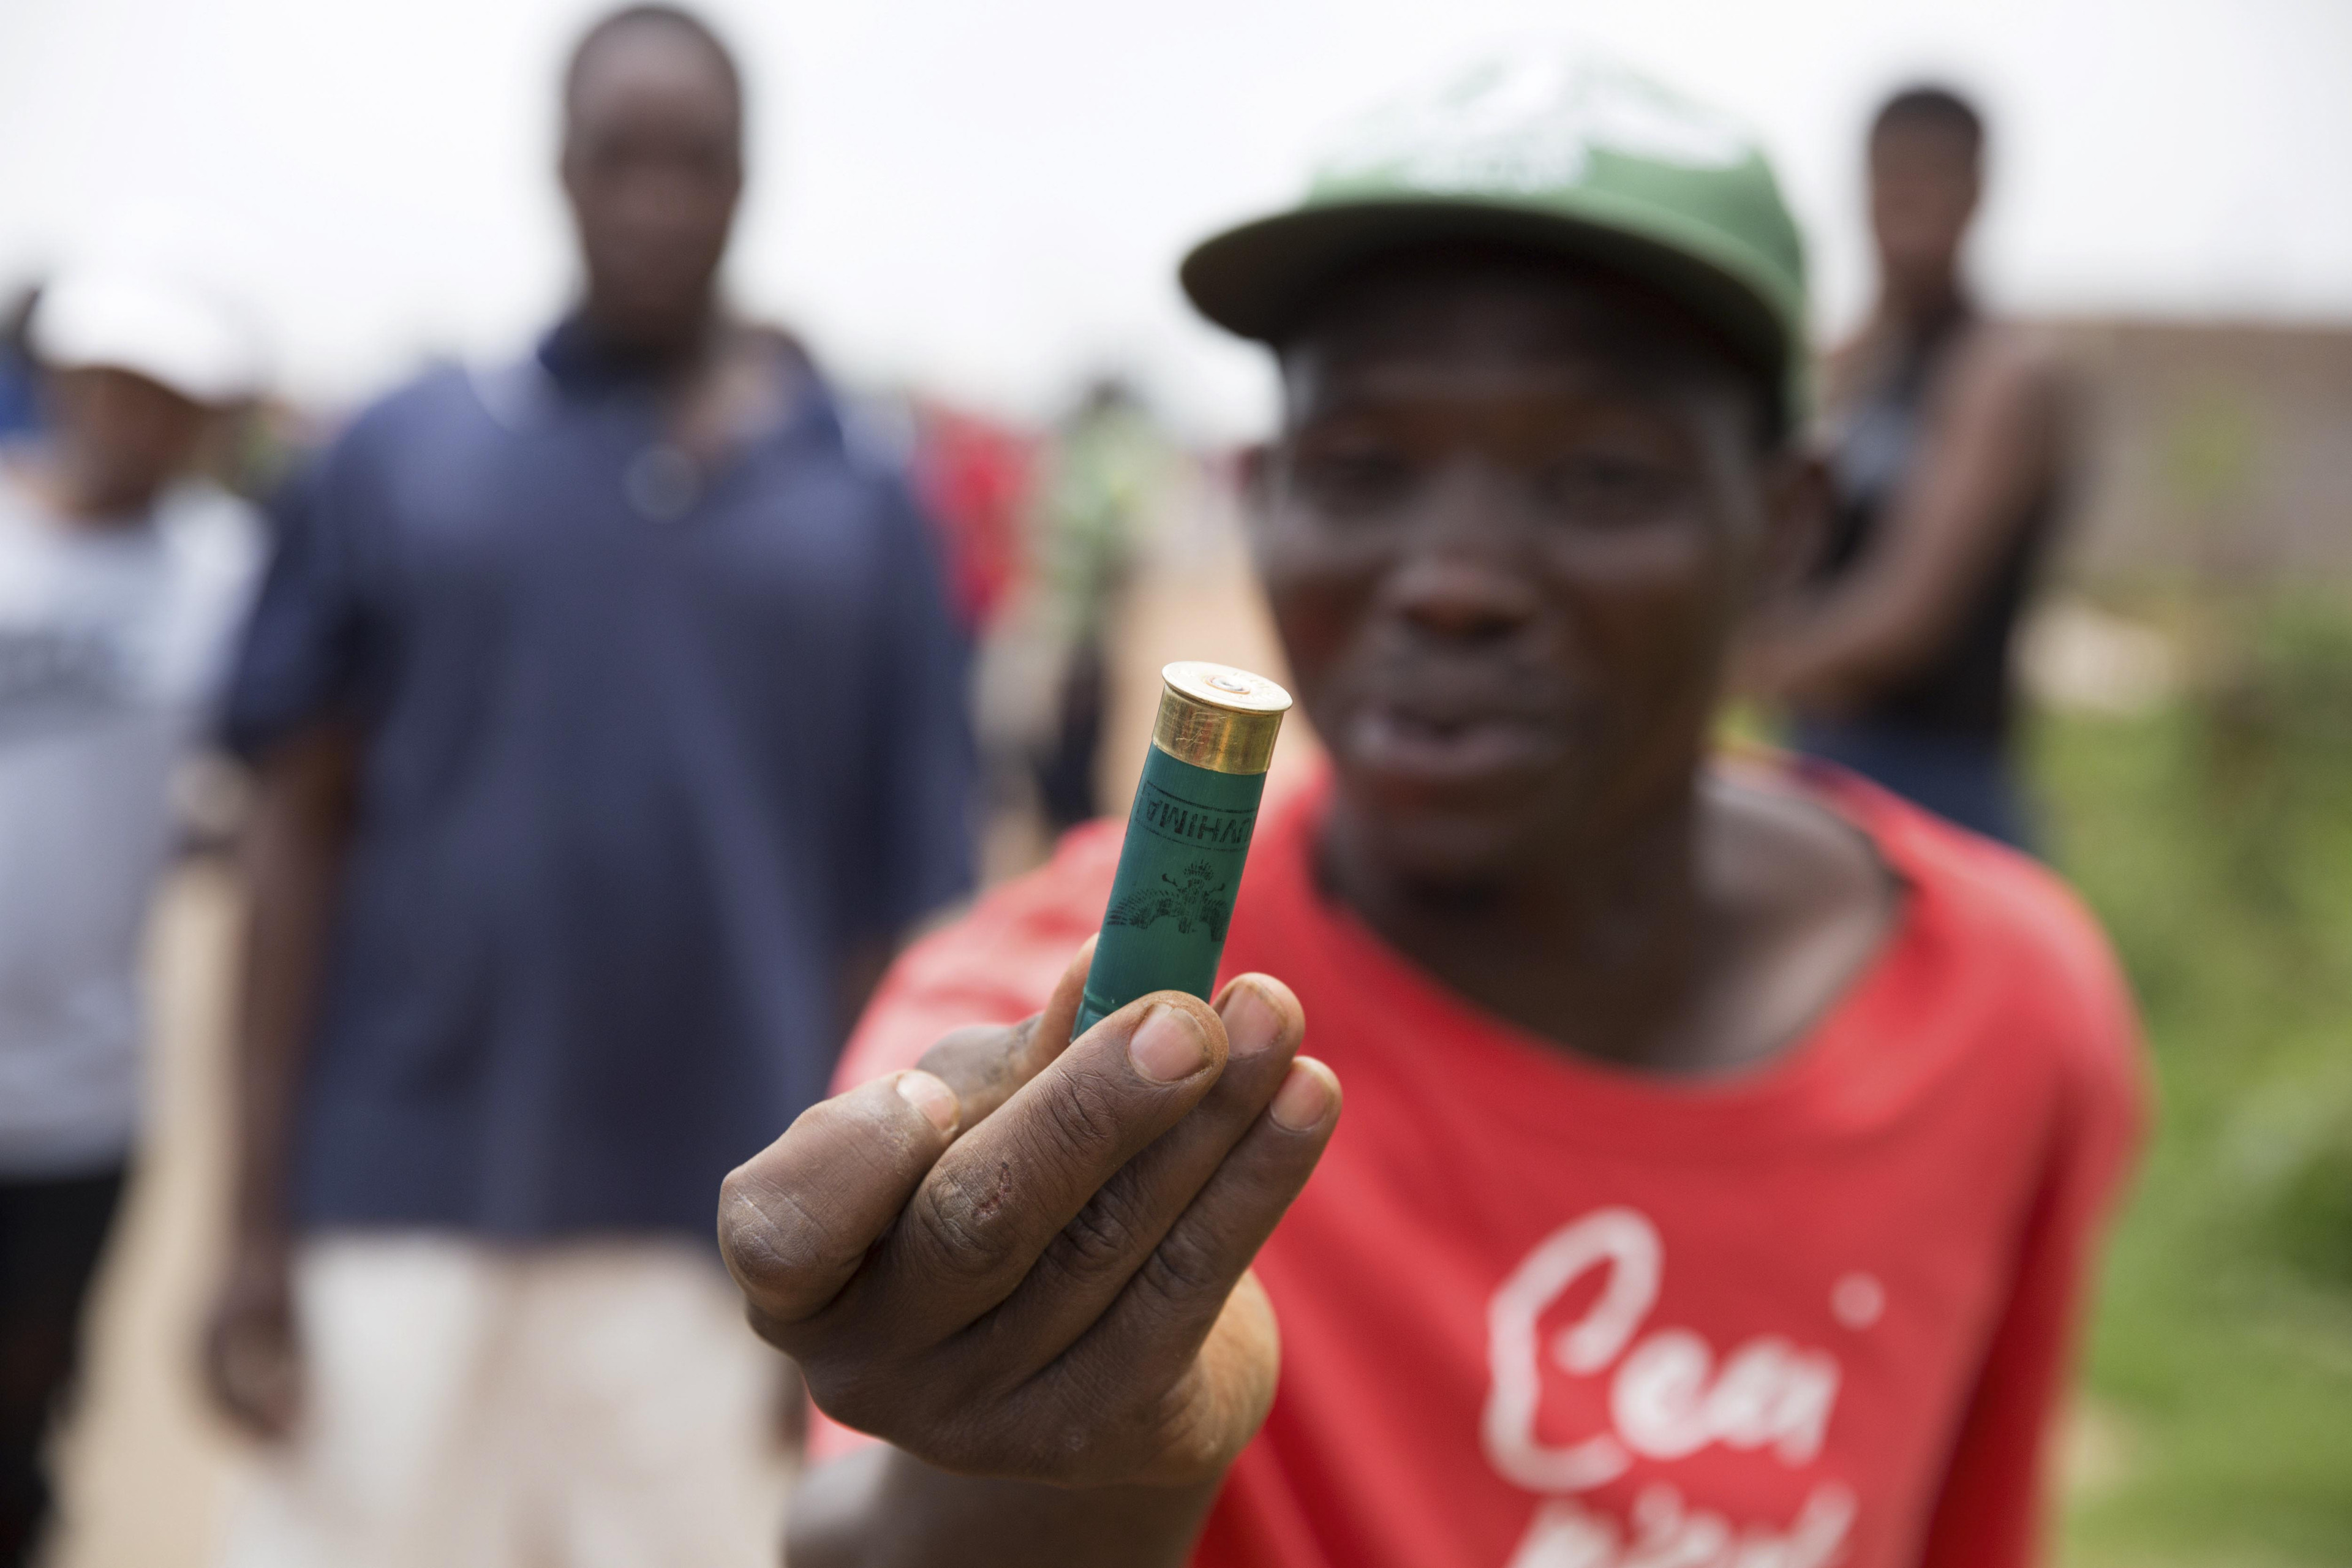 8 February 2019: A land occupier shows the cartridge of a rubber bullet he says Ekurhuleni metro police officers fired during an operation to evict them from land in Barcelona.